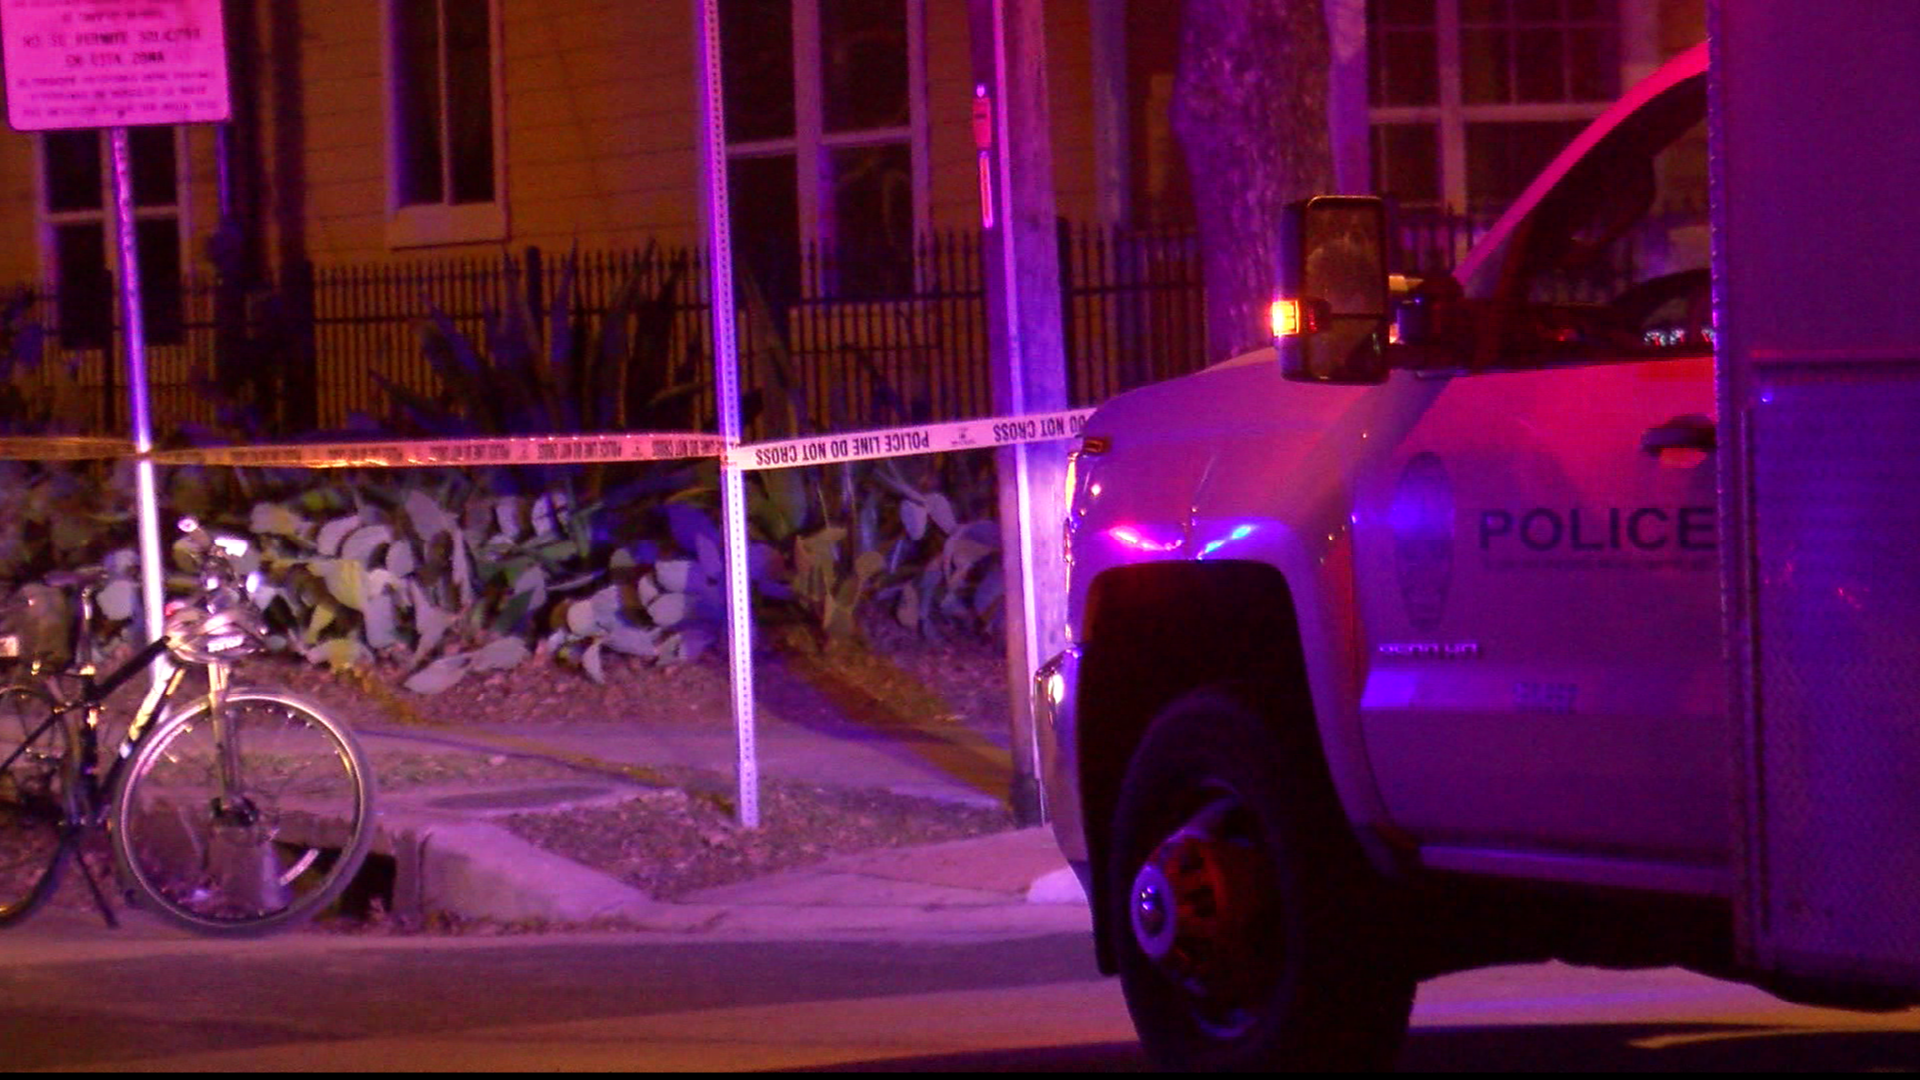 A man was seriously injured in a stabbing Wednesday night in East Austin. (CBS Austin)